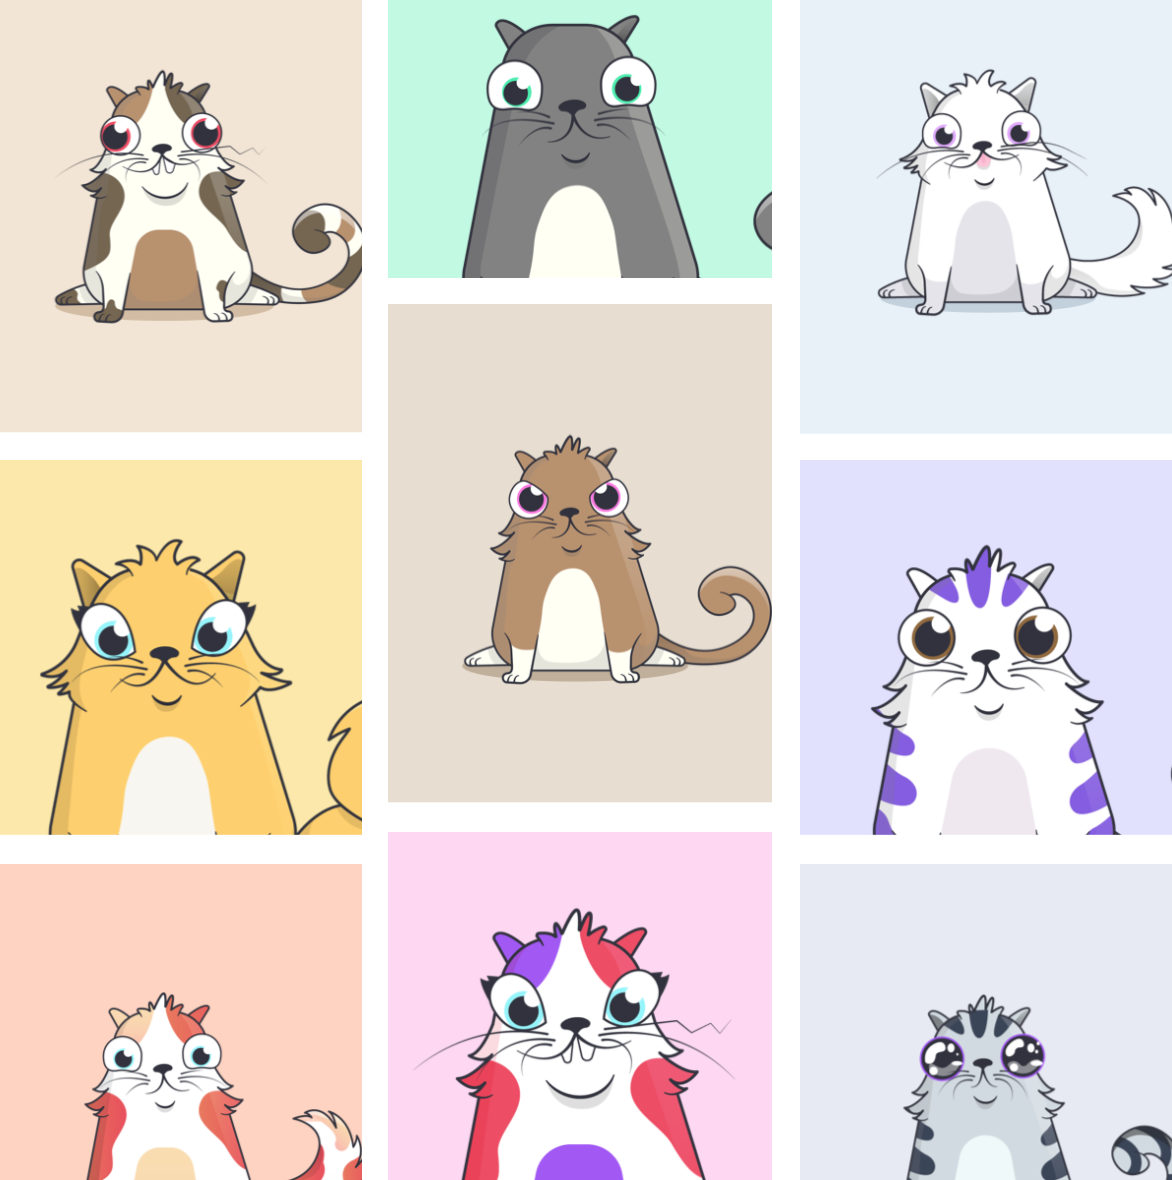 crypto-kitties-ethereum-cover-photo